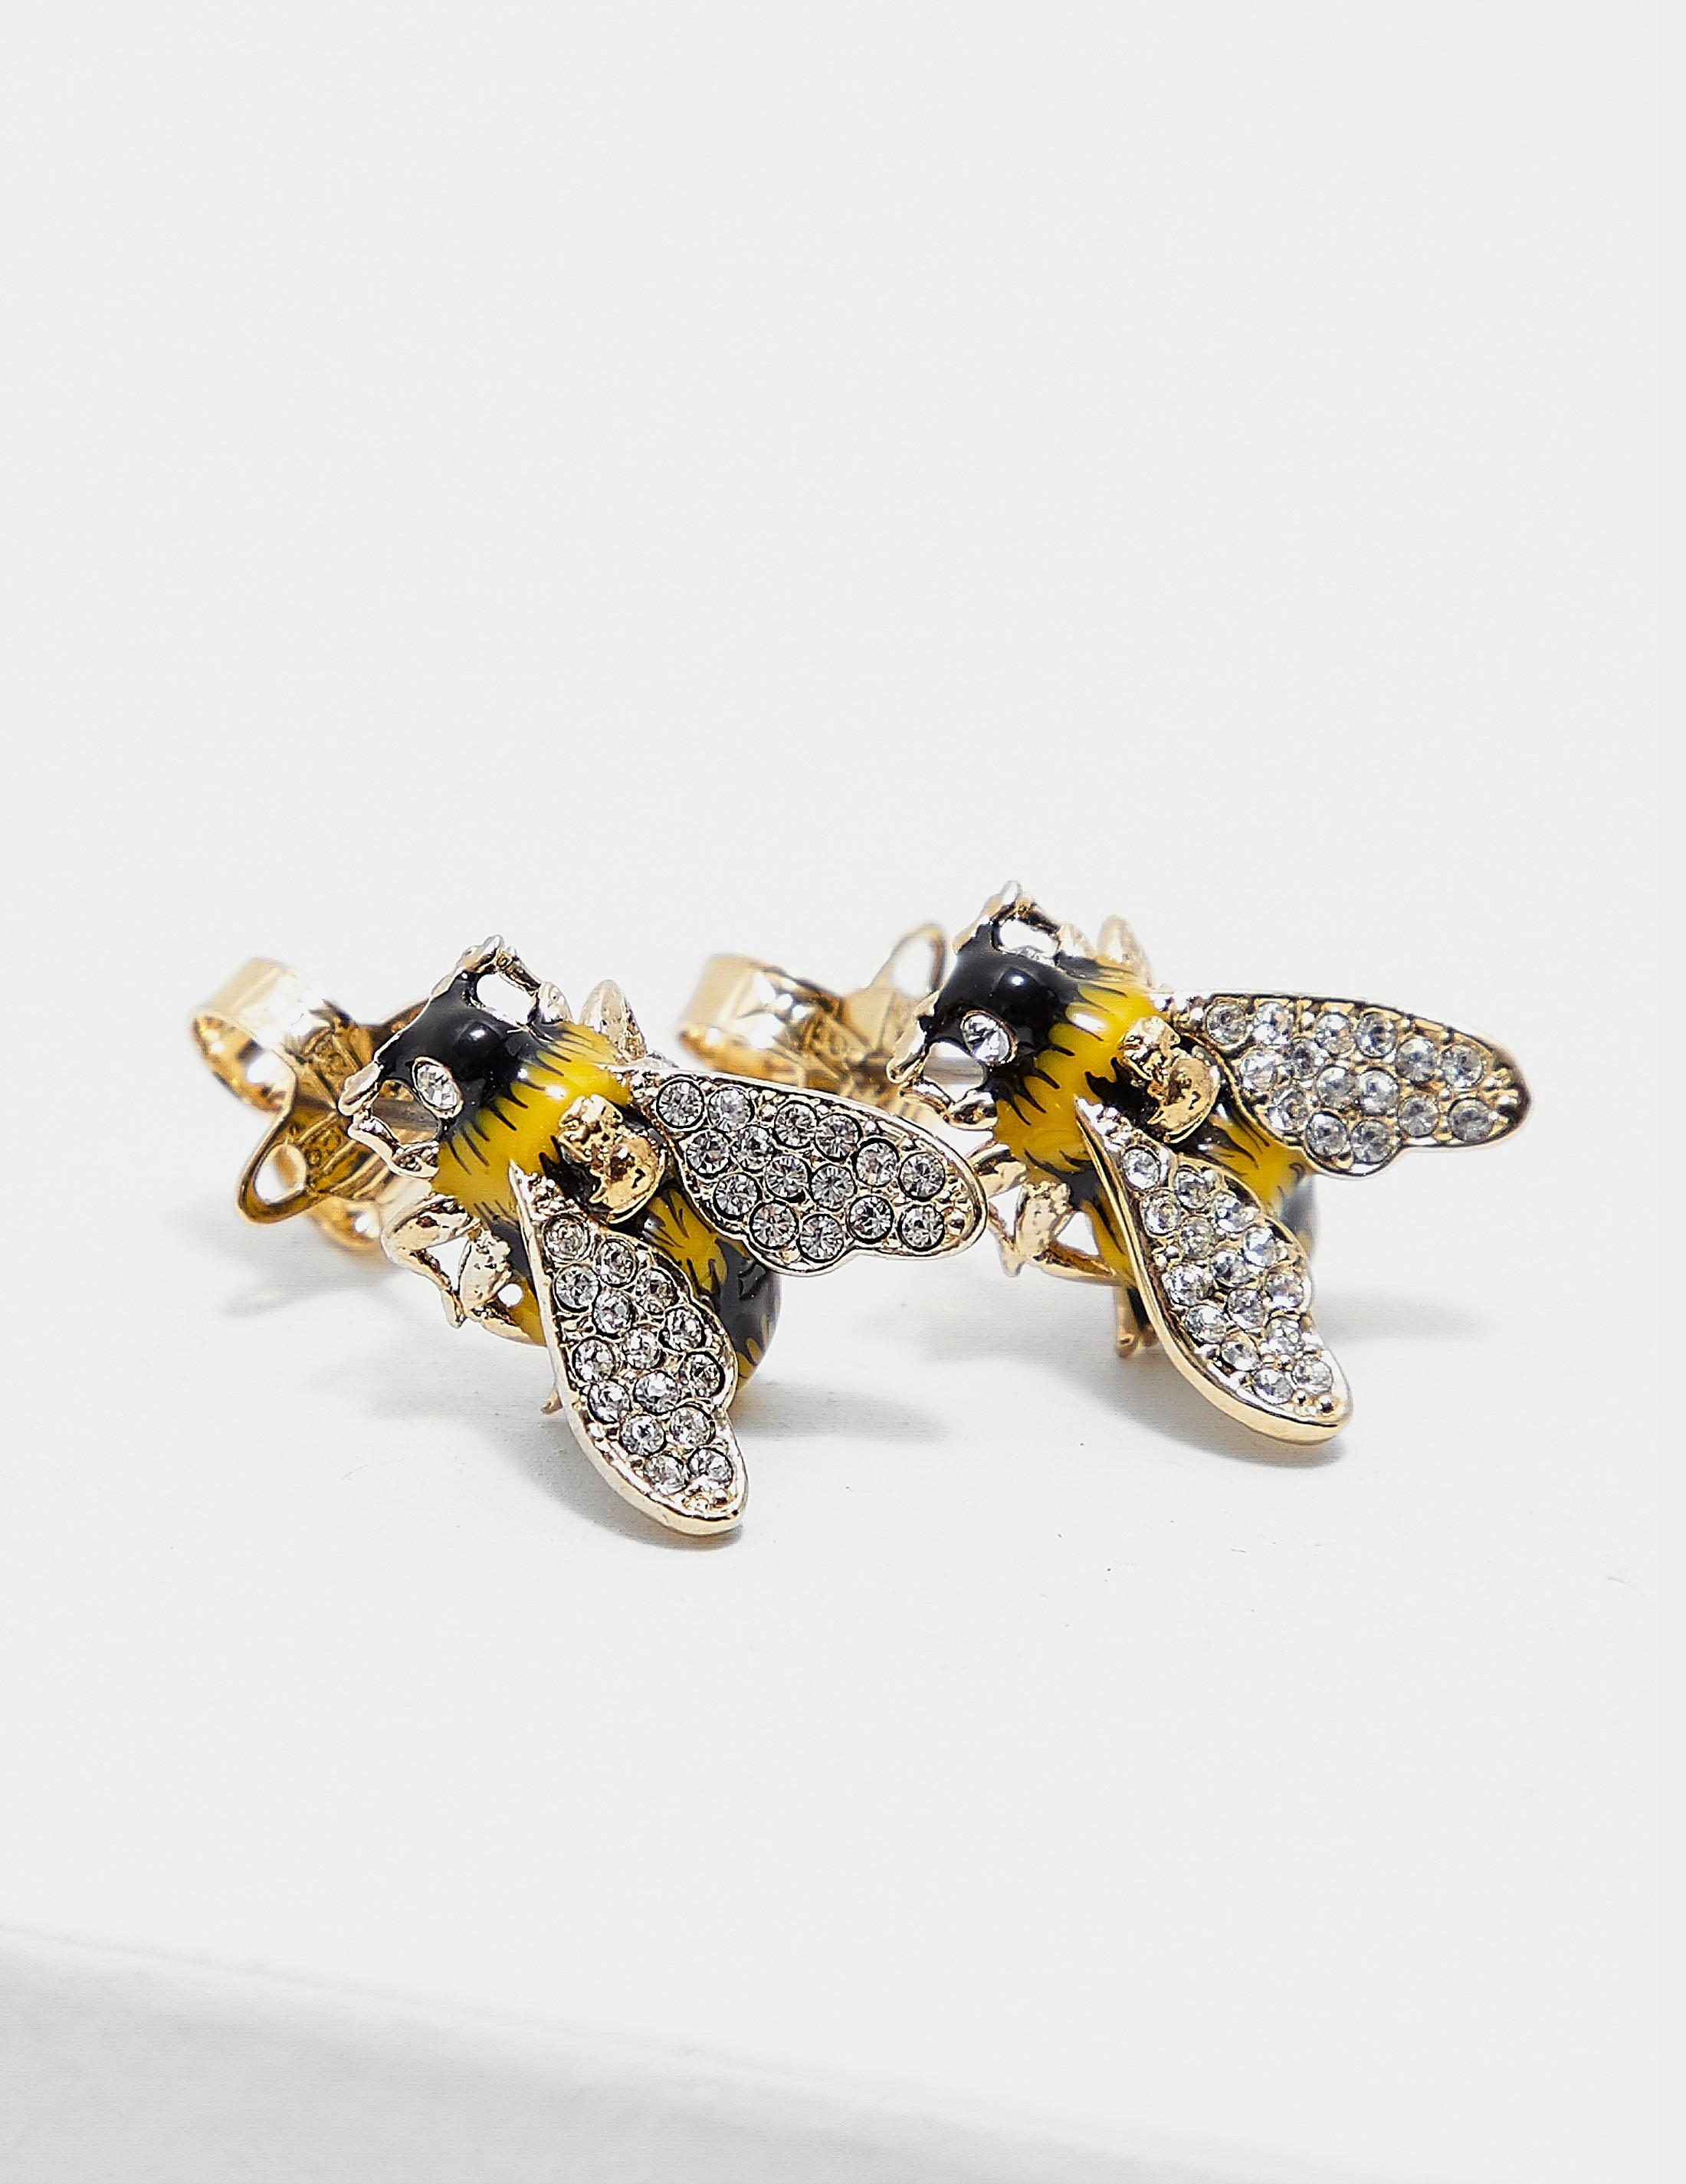 Vivienne Westwood Bumble Bee Earrings